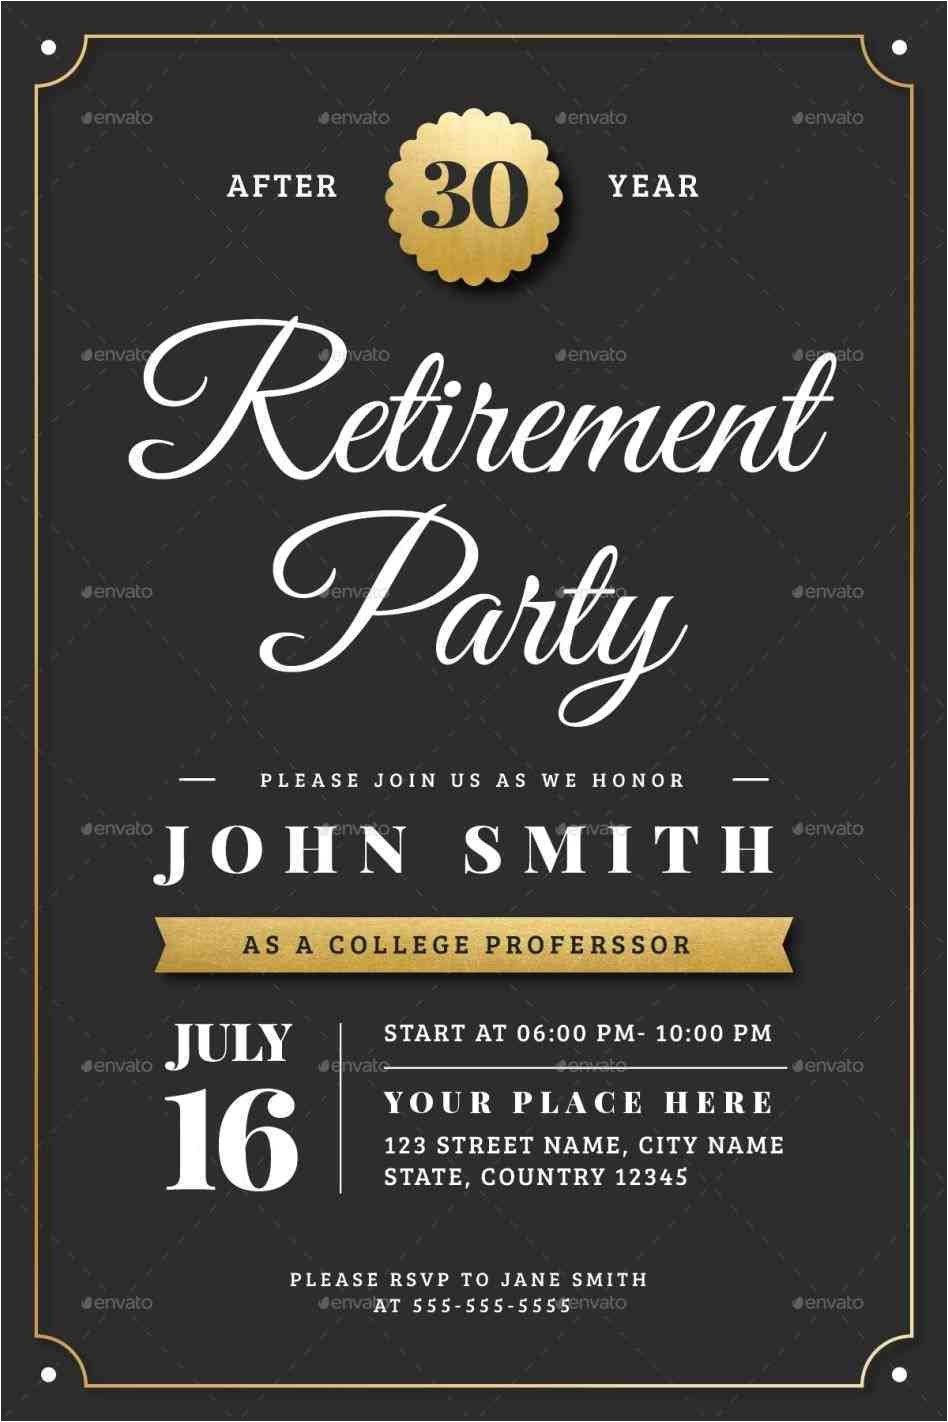 gold retirement flyer template powerpoint retirement invitation flyer templates by vector vactory free printable garage sale flyers attract more free retirement flyer template powerpoint jpg